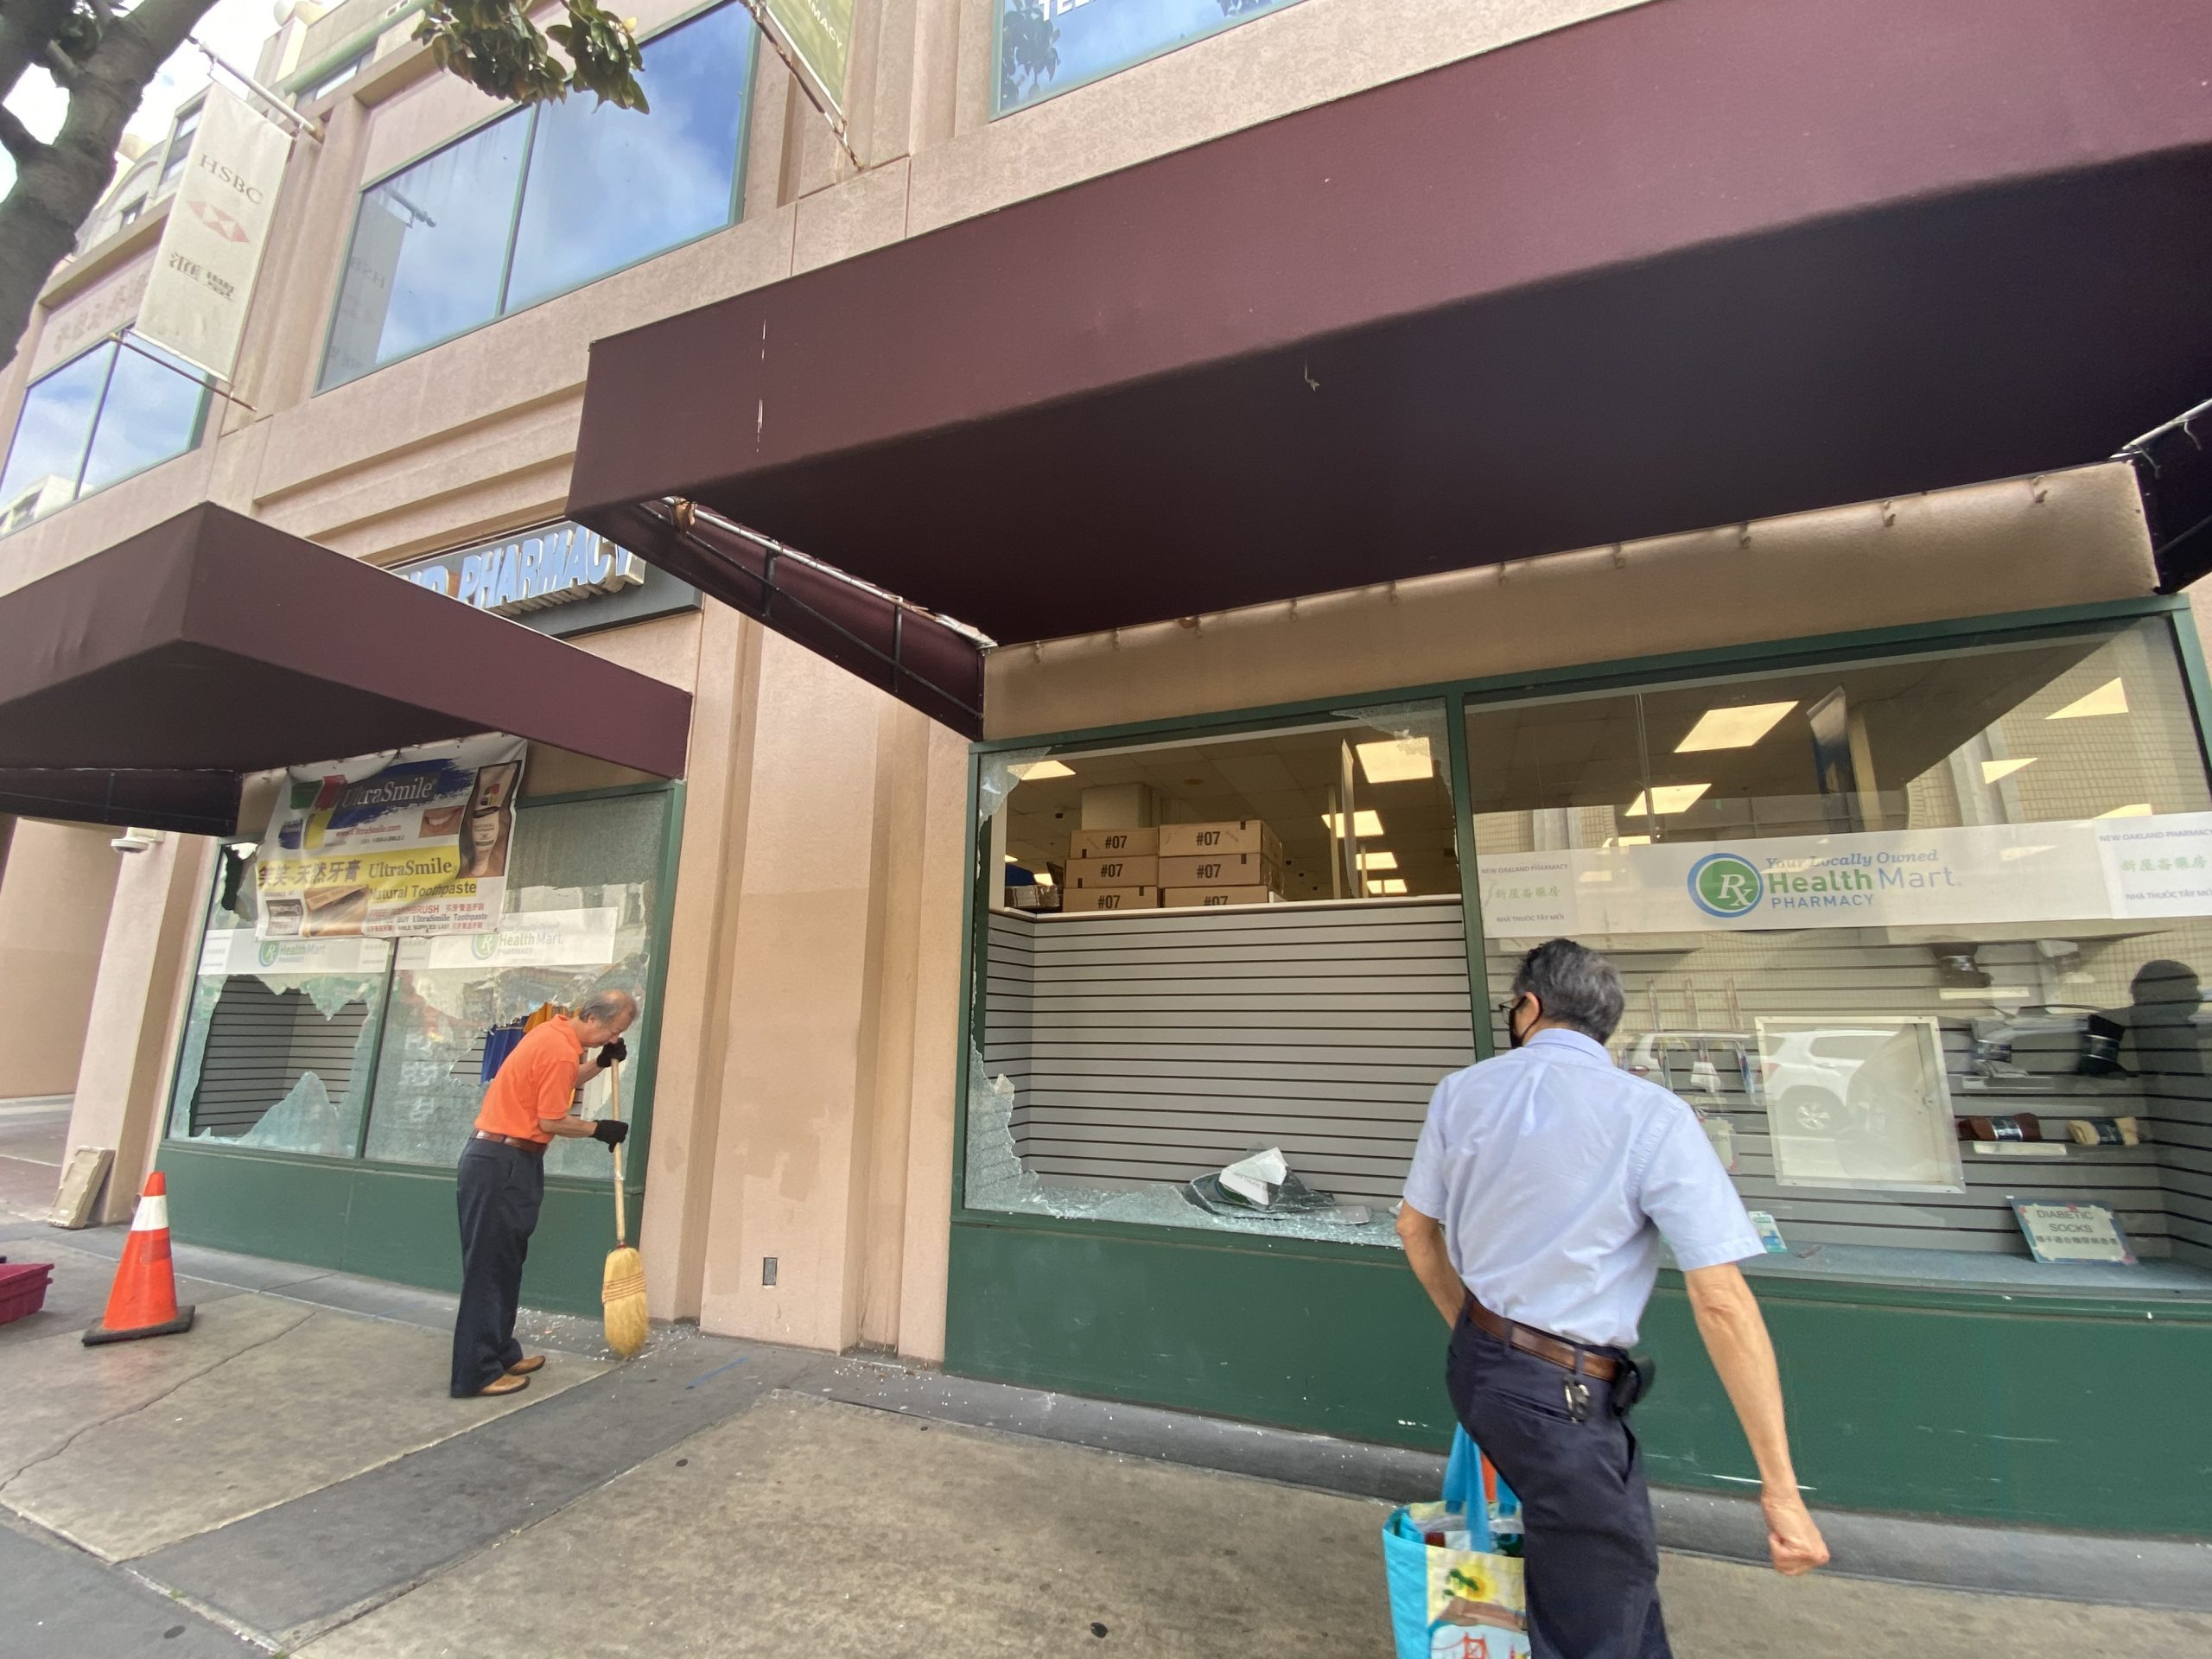 An image of a large window that is broken in Chinatown, with the owner sweeping up glass in the morning.